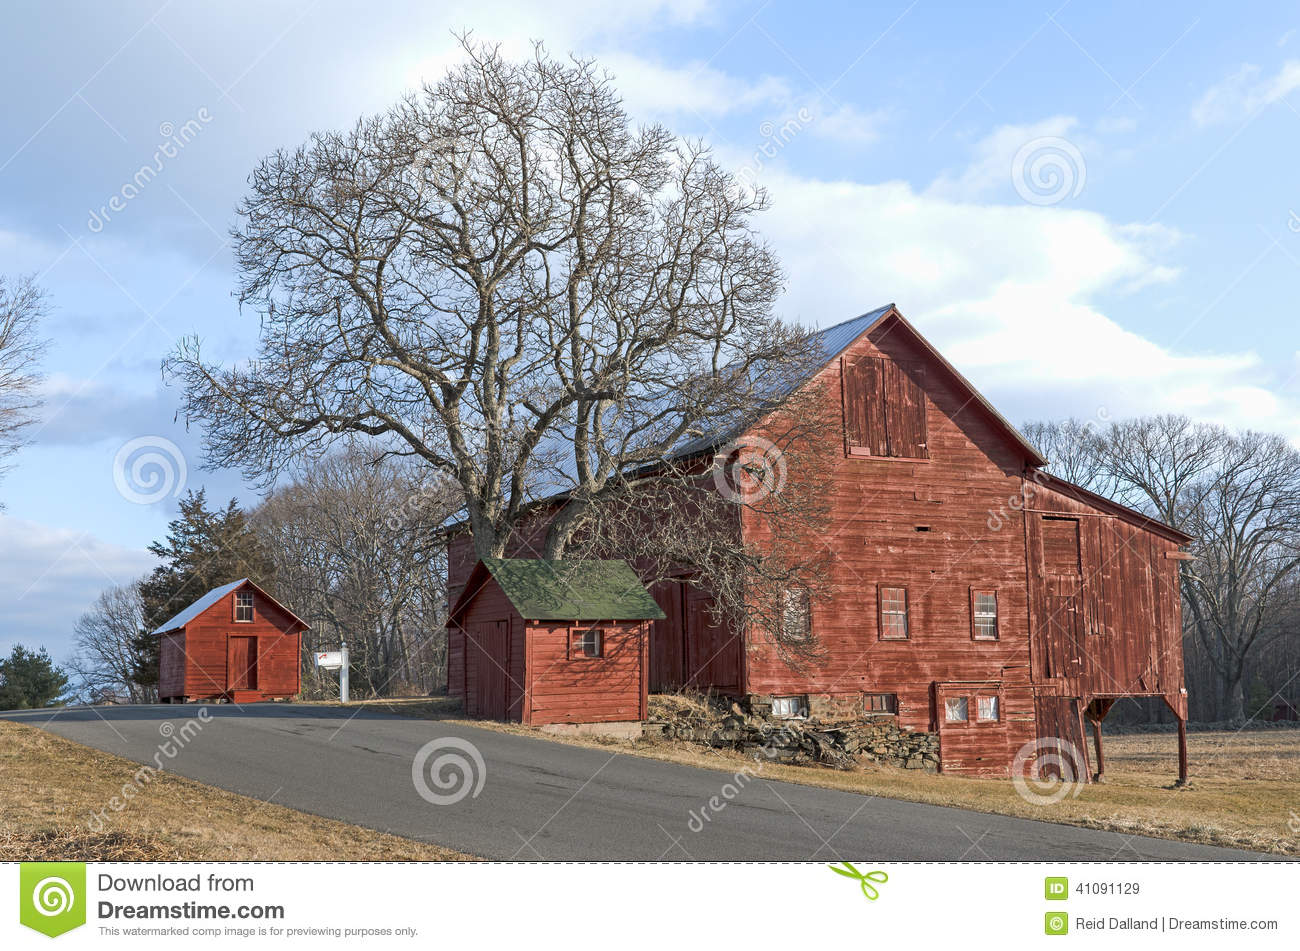 Old Red Barns And Tree On Country Road Stock Image